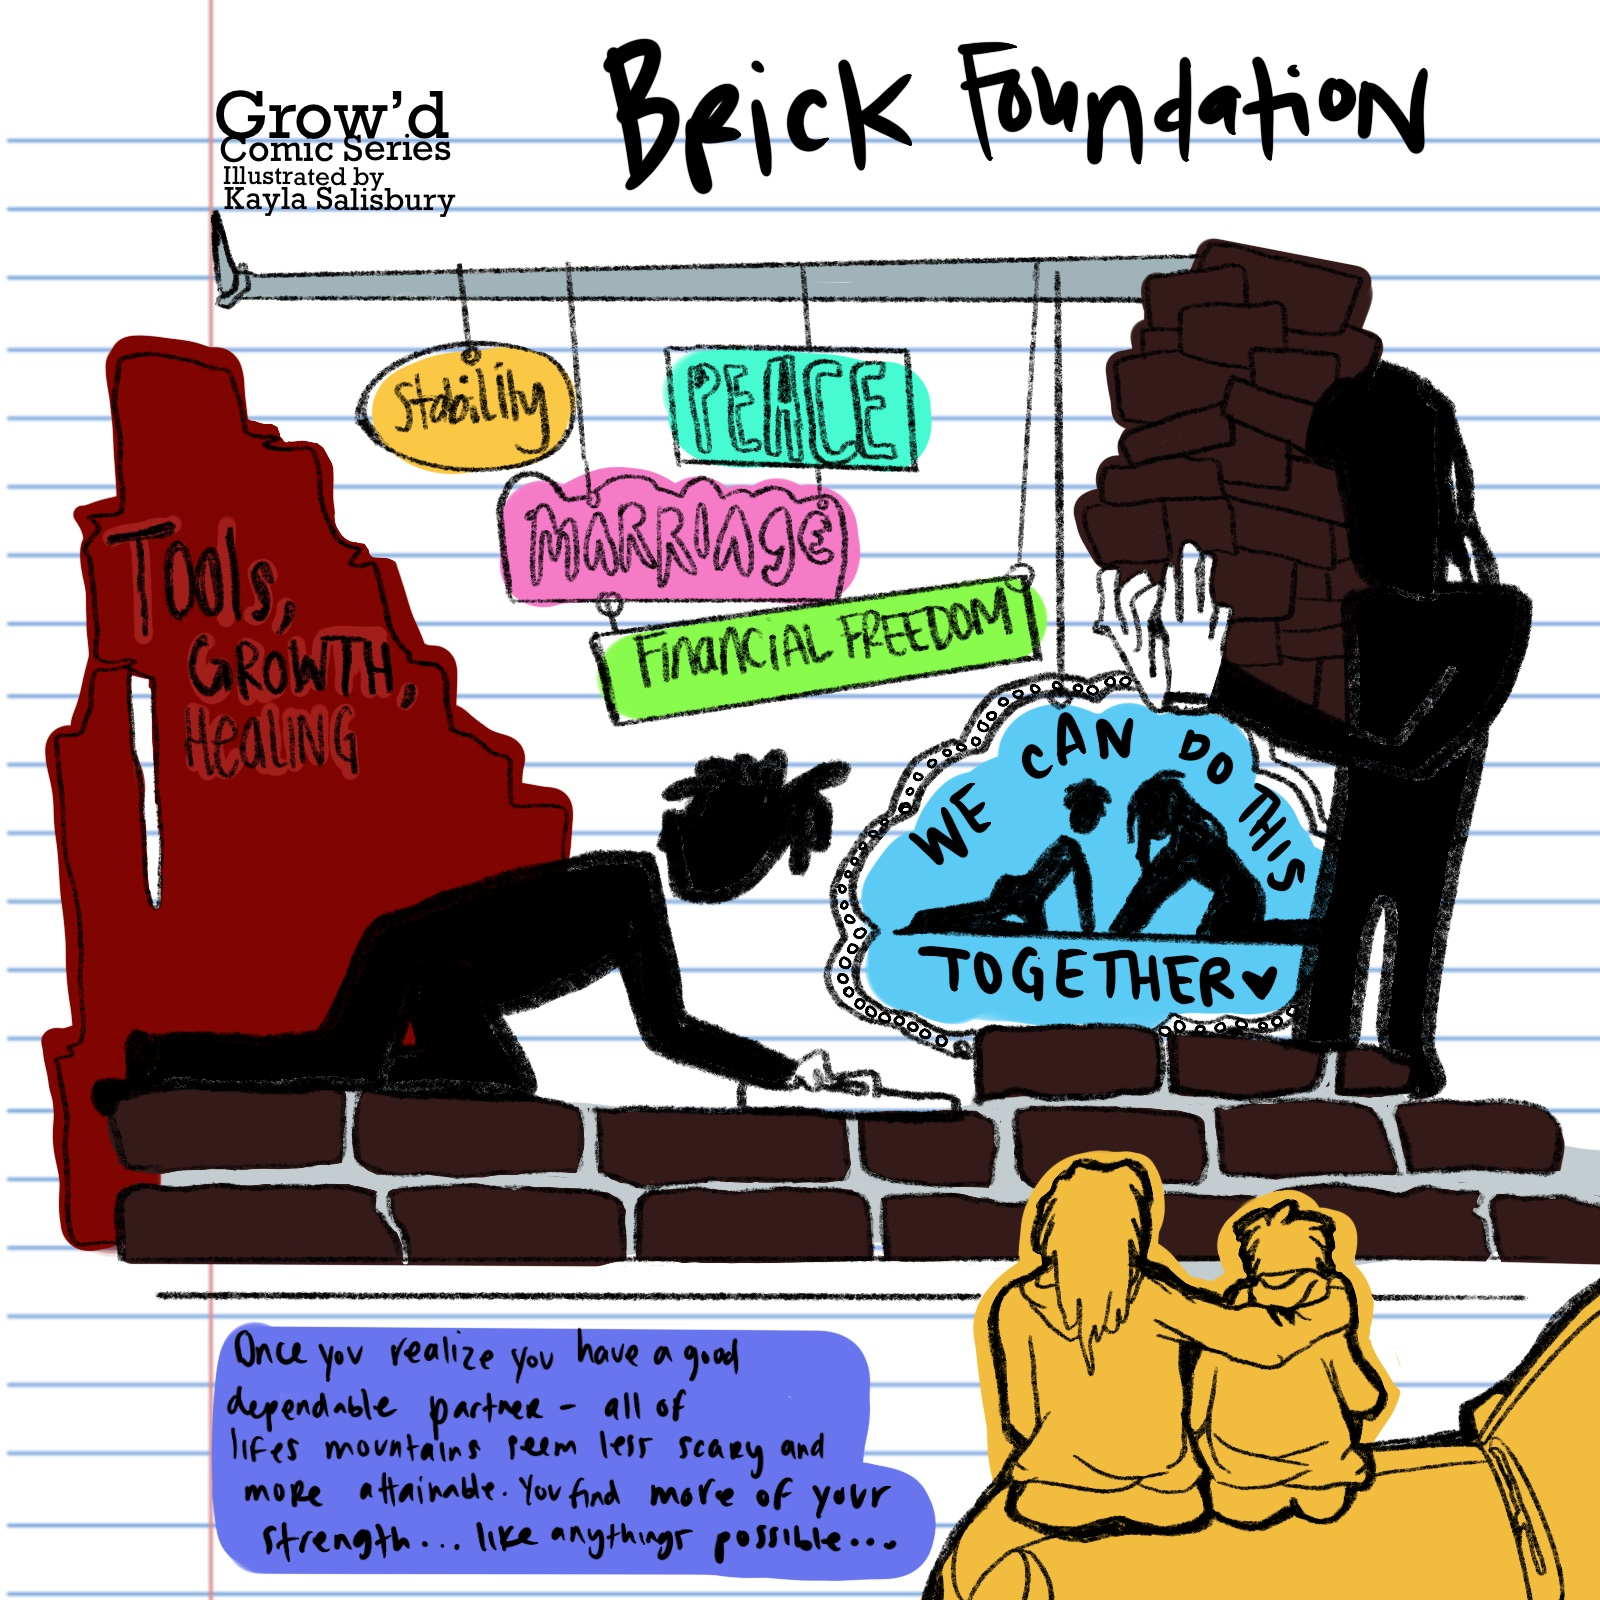 brickfoundation2.jpg